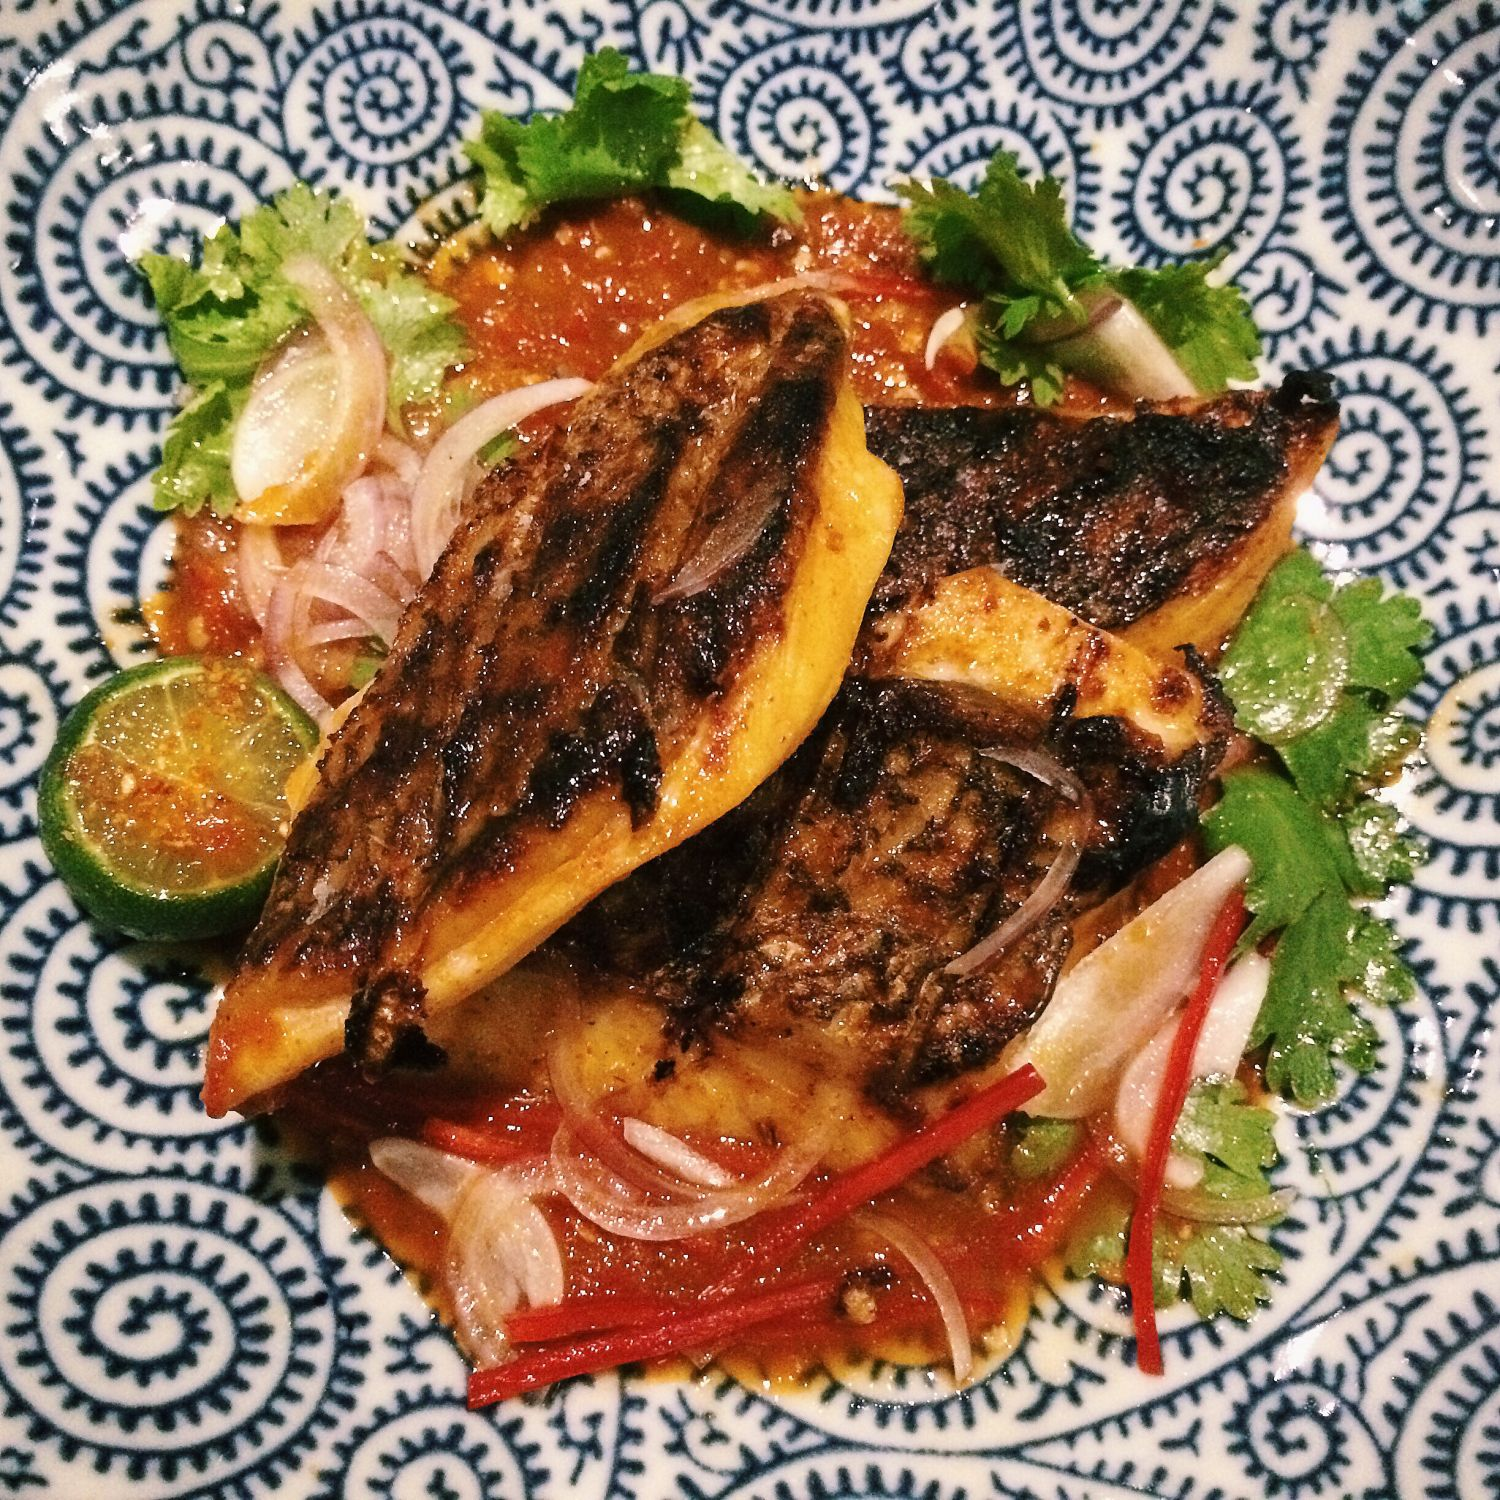 Coconut Charcoal Grilled Wild Caught Red Snapper - Candlenut